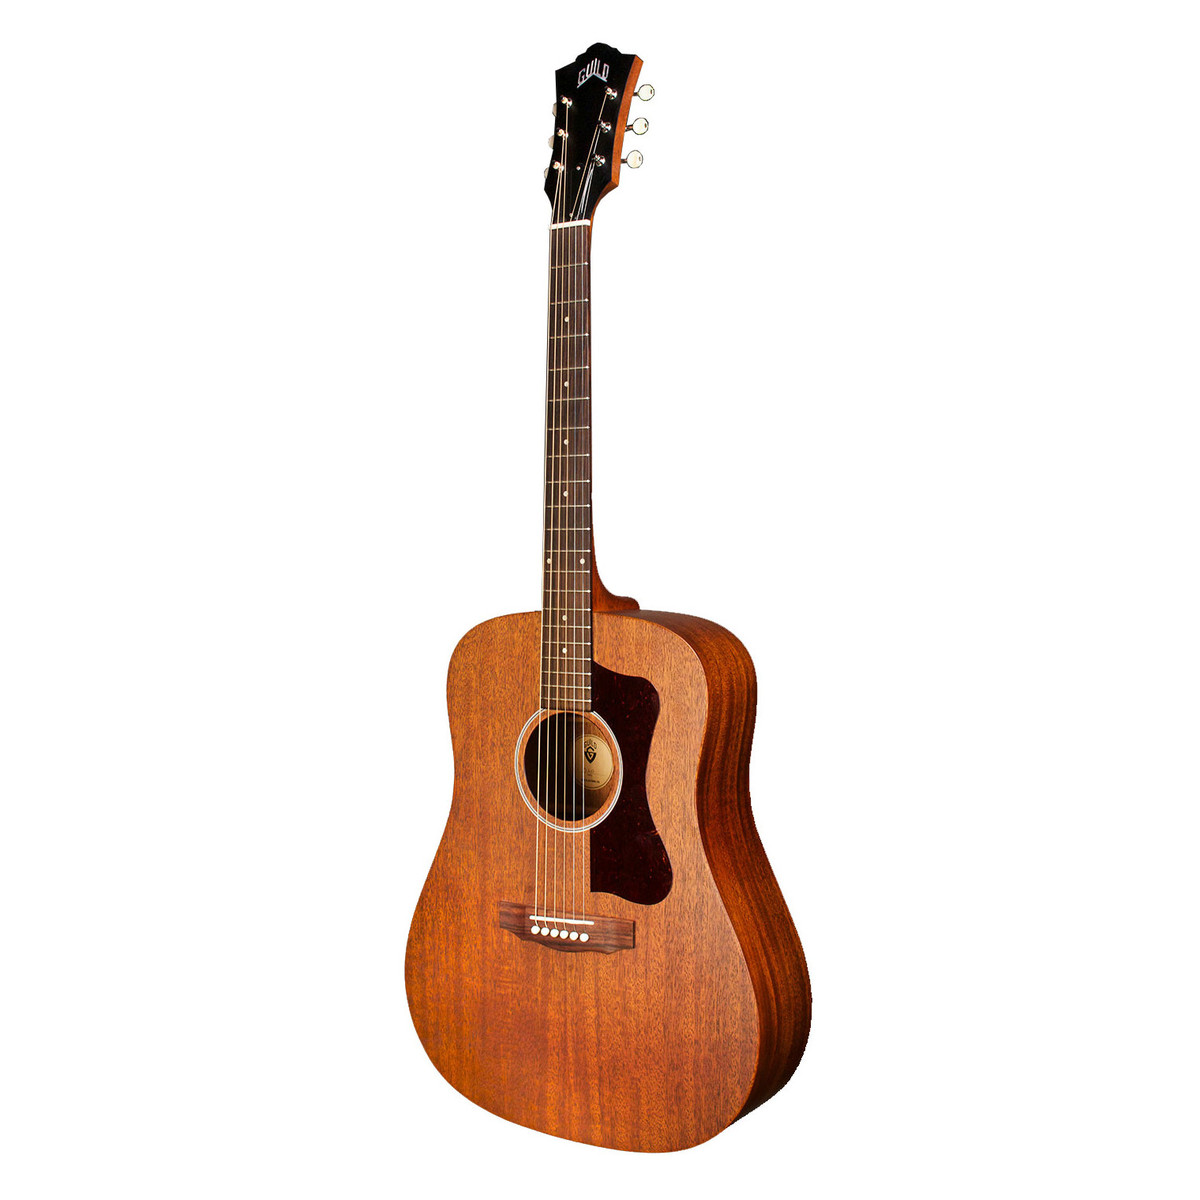 from Drake dating guild guitars